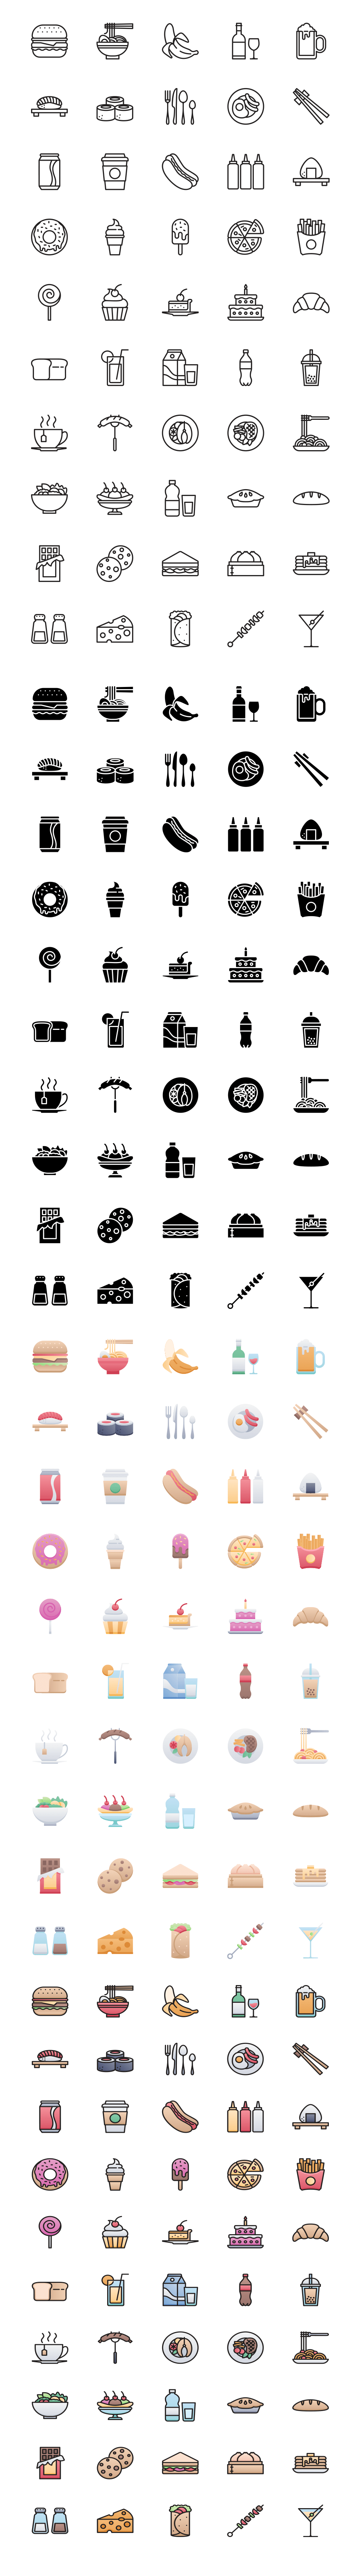 50 Food Drink Icons-2